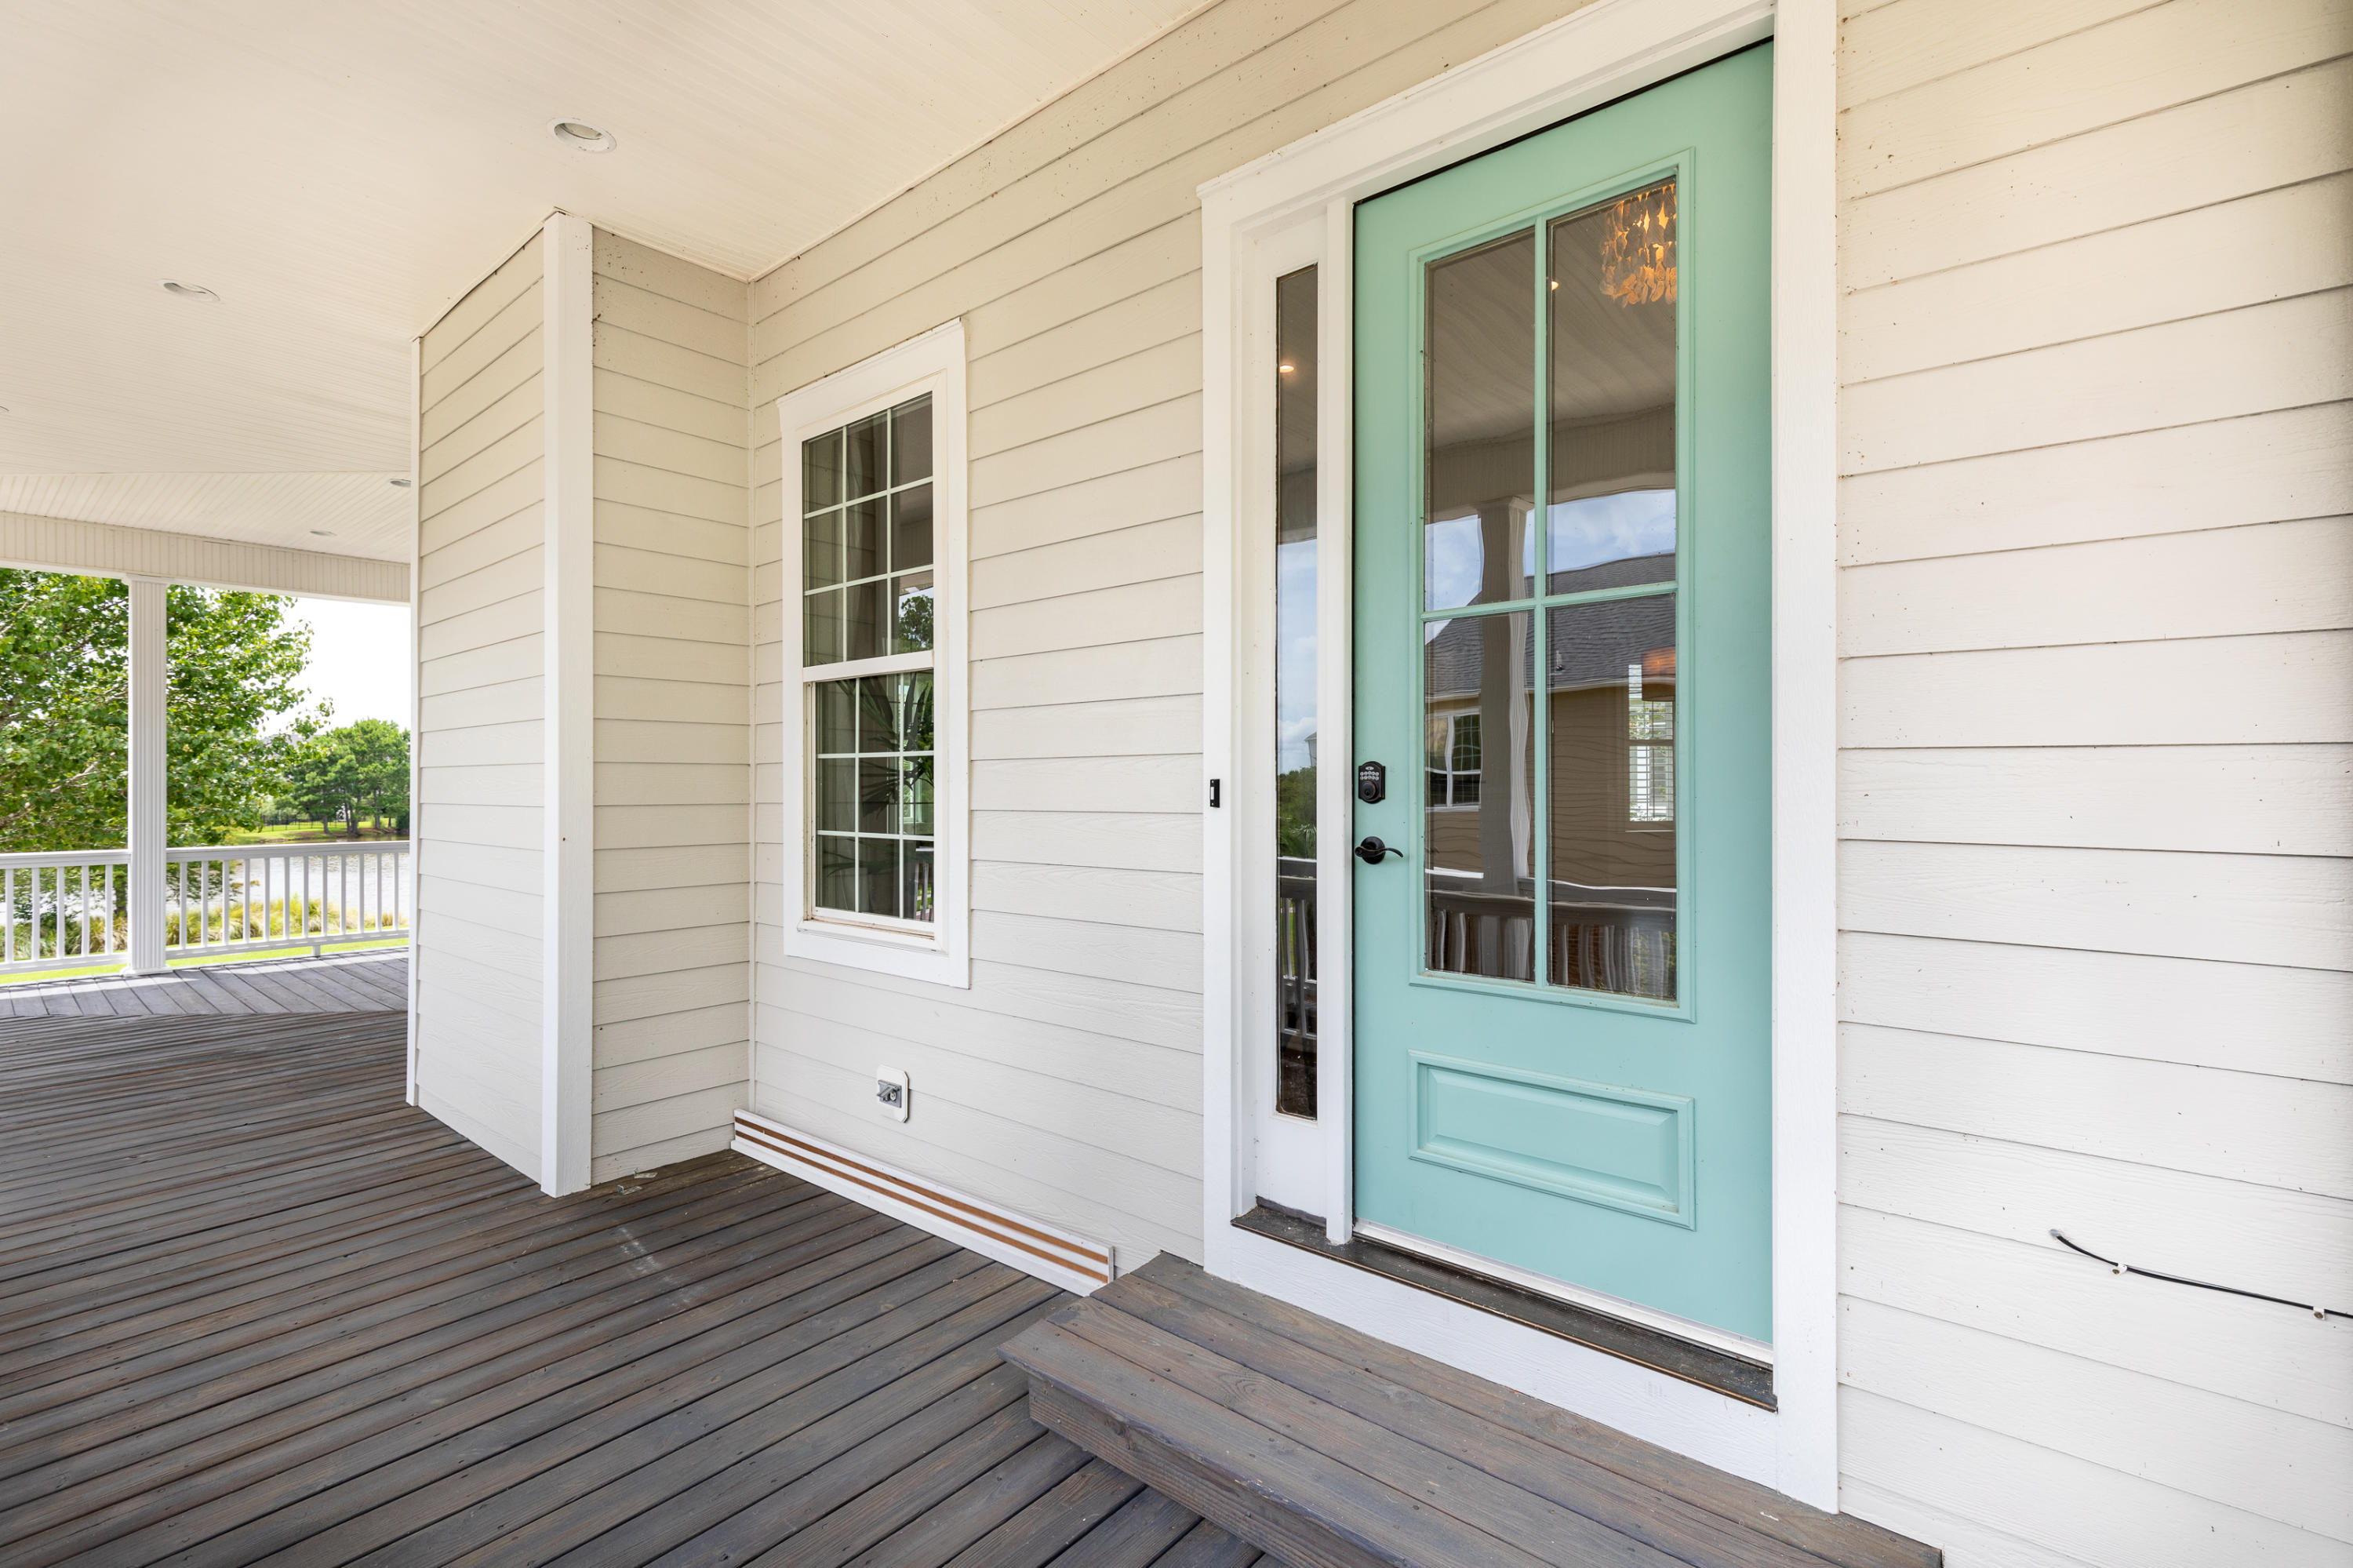 Rivertowne Country Club Homes For Sale - 1725 Rivertowne Country Club, Mount Pleasant, SC - 50